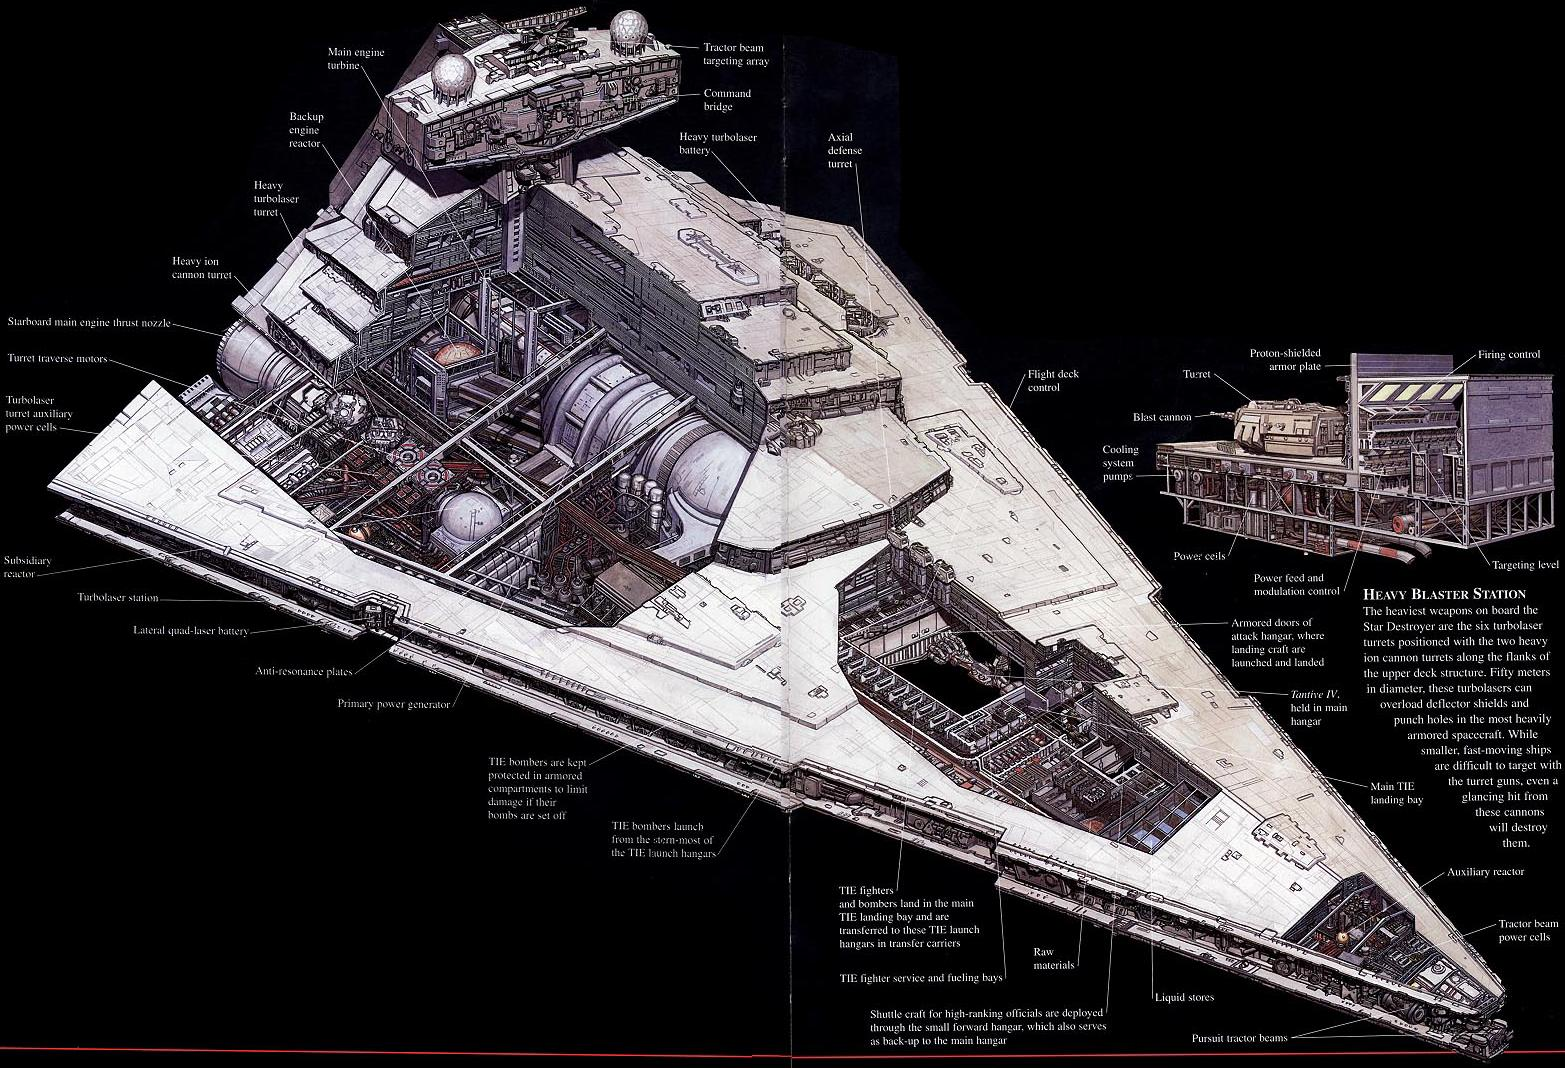 565131453218049929 as well Mammoth Armed Reclamation Vehicle Marv together with Concept Maquinas De  bate further Vehicle Transmission Types And Their Differences also Concept Art For Martian Movie. on military vehicle schematics